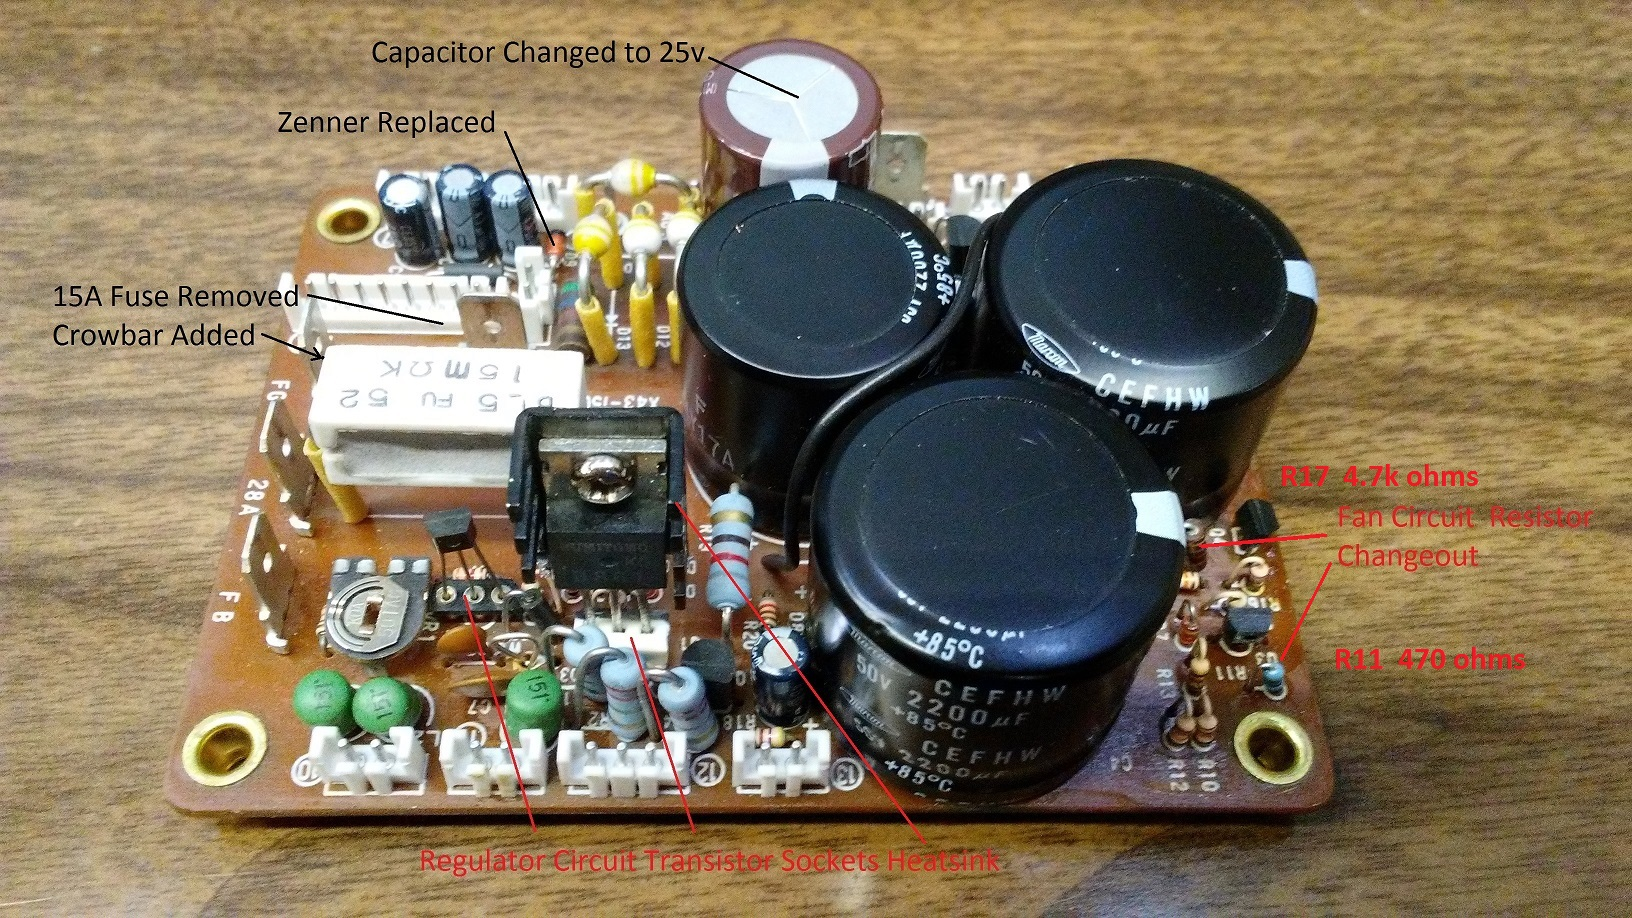 Kenwood TS-940S Power Supply Capacitor Replacement Kit